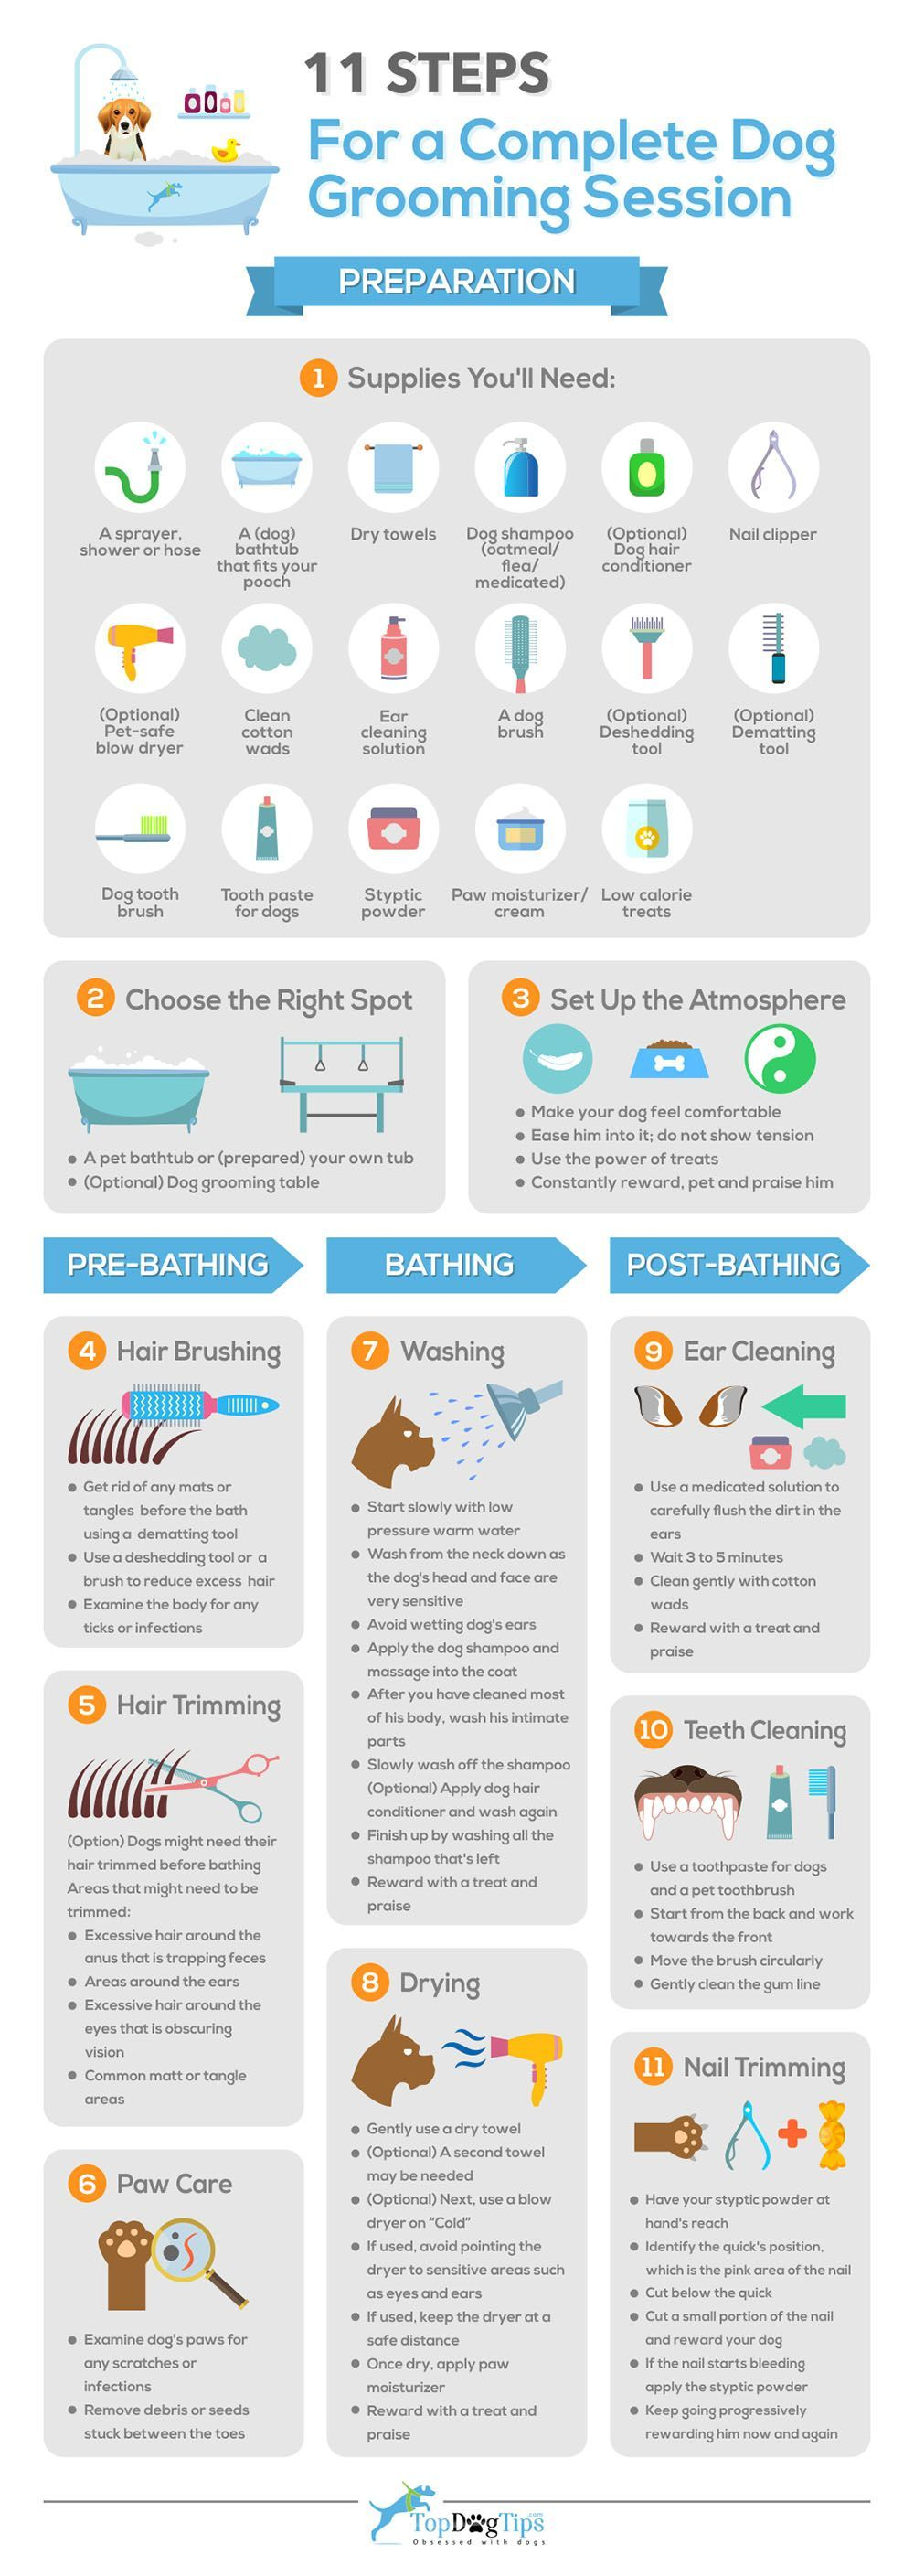 11 Quick Steps for a Complete Dog Grooming Session Infographic  Heres an infographic with 11 quick steps to your full grooming session from preparation and cho